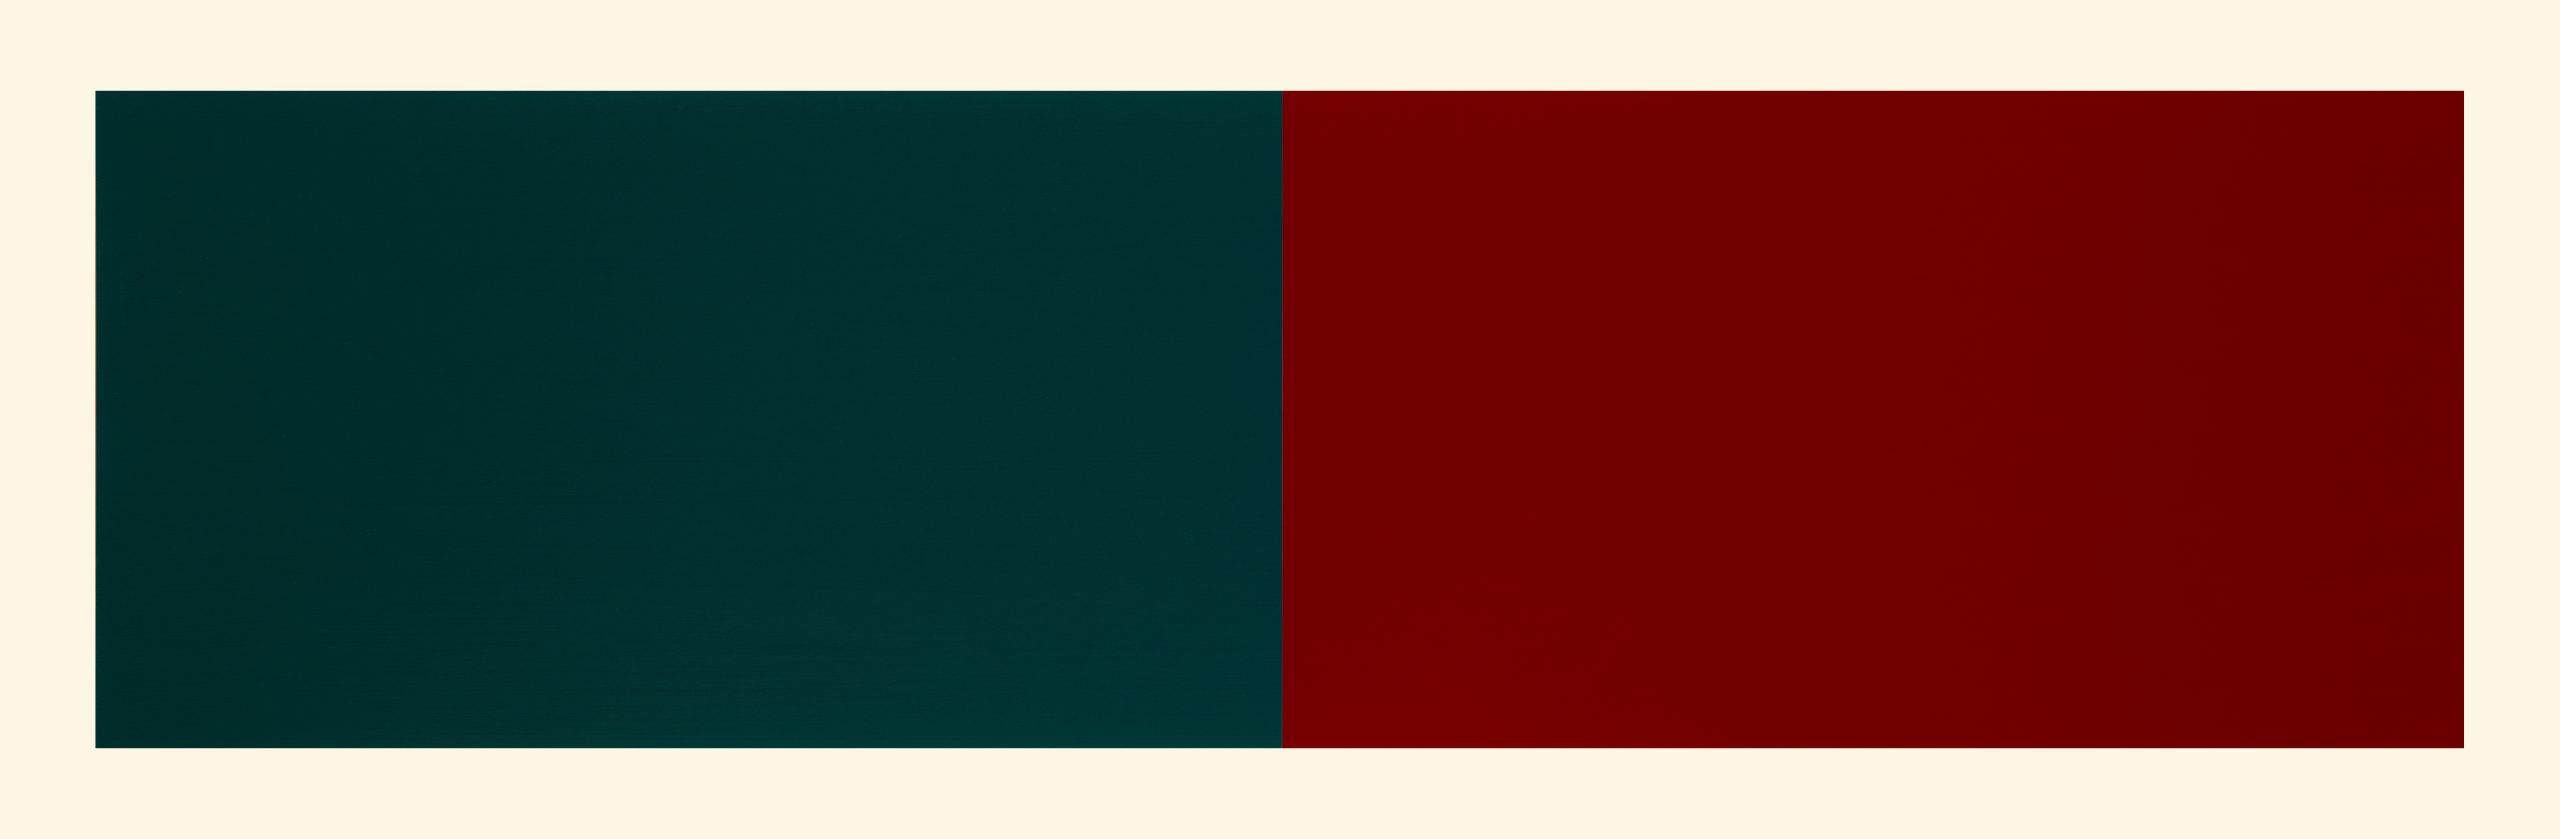 Rivers & Mountains/9, Blue Green/red Violet by Rupert Deese